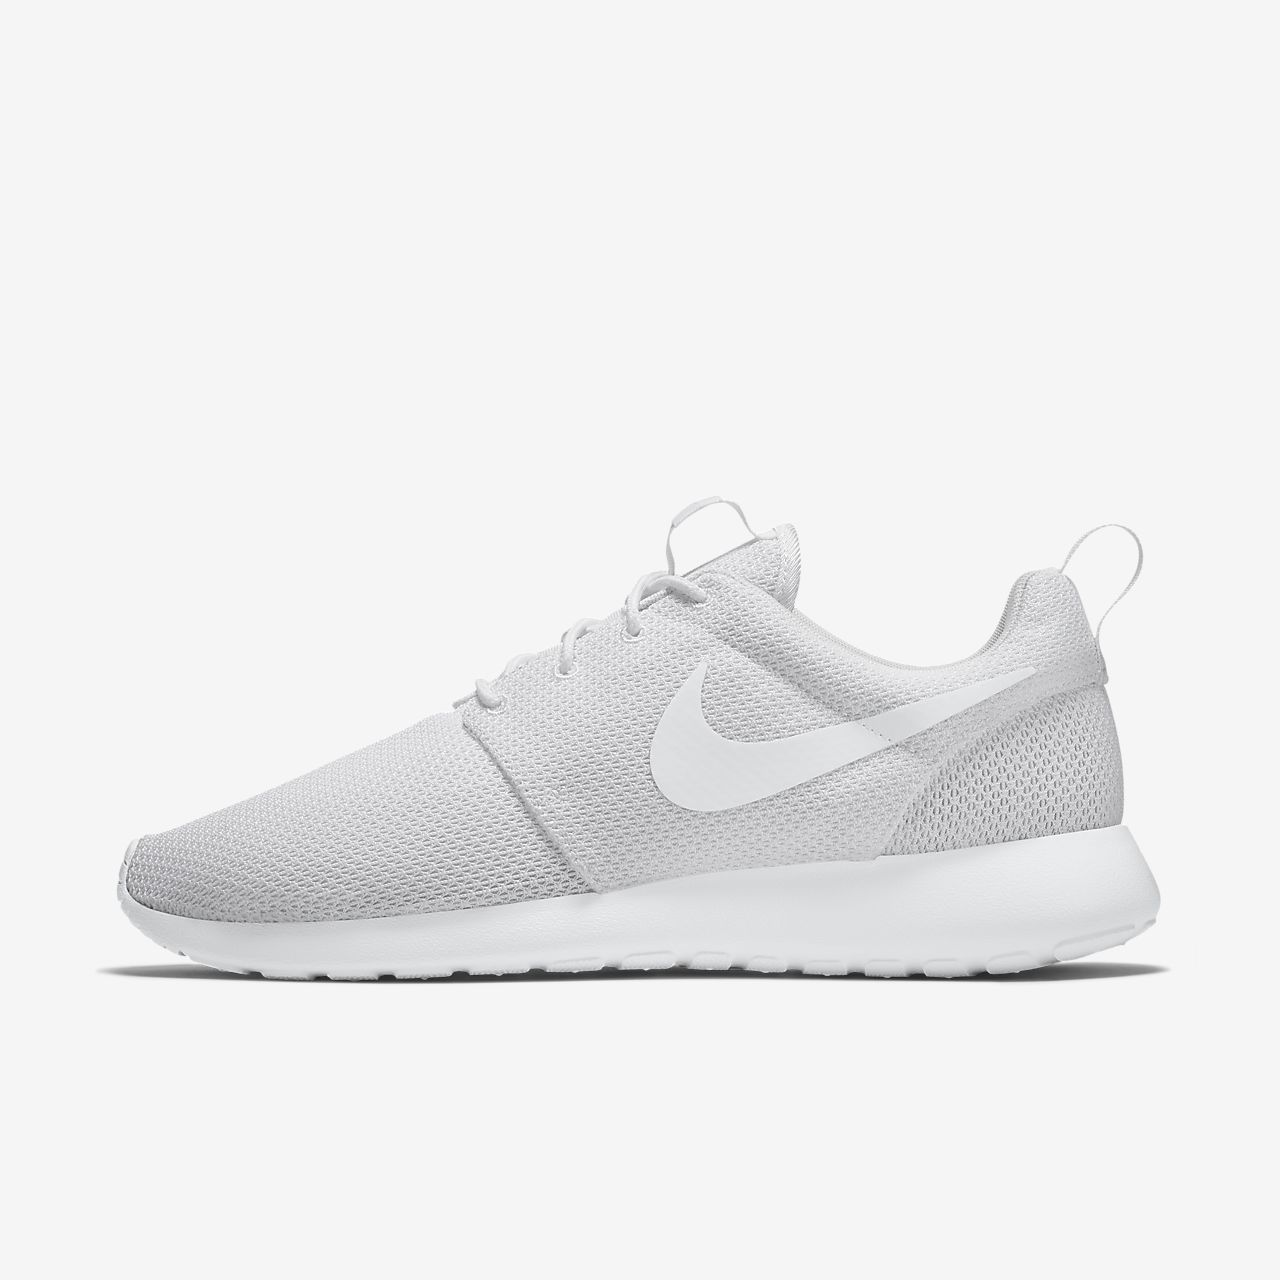 separation shoes b0825 d6d5e ... Nike Roshe One Men s Shoe